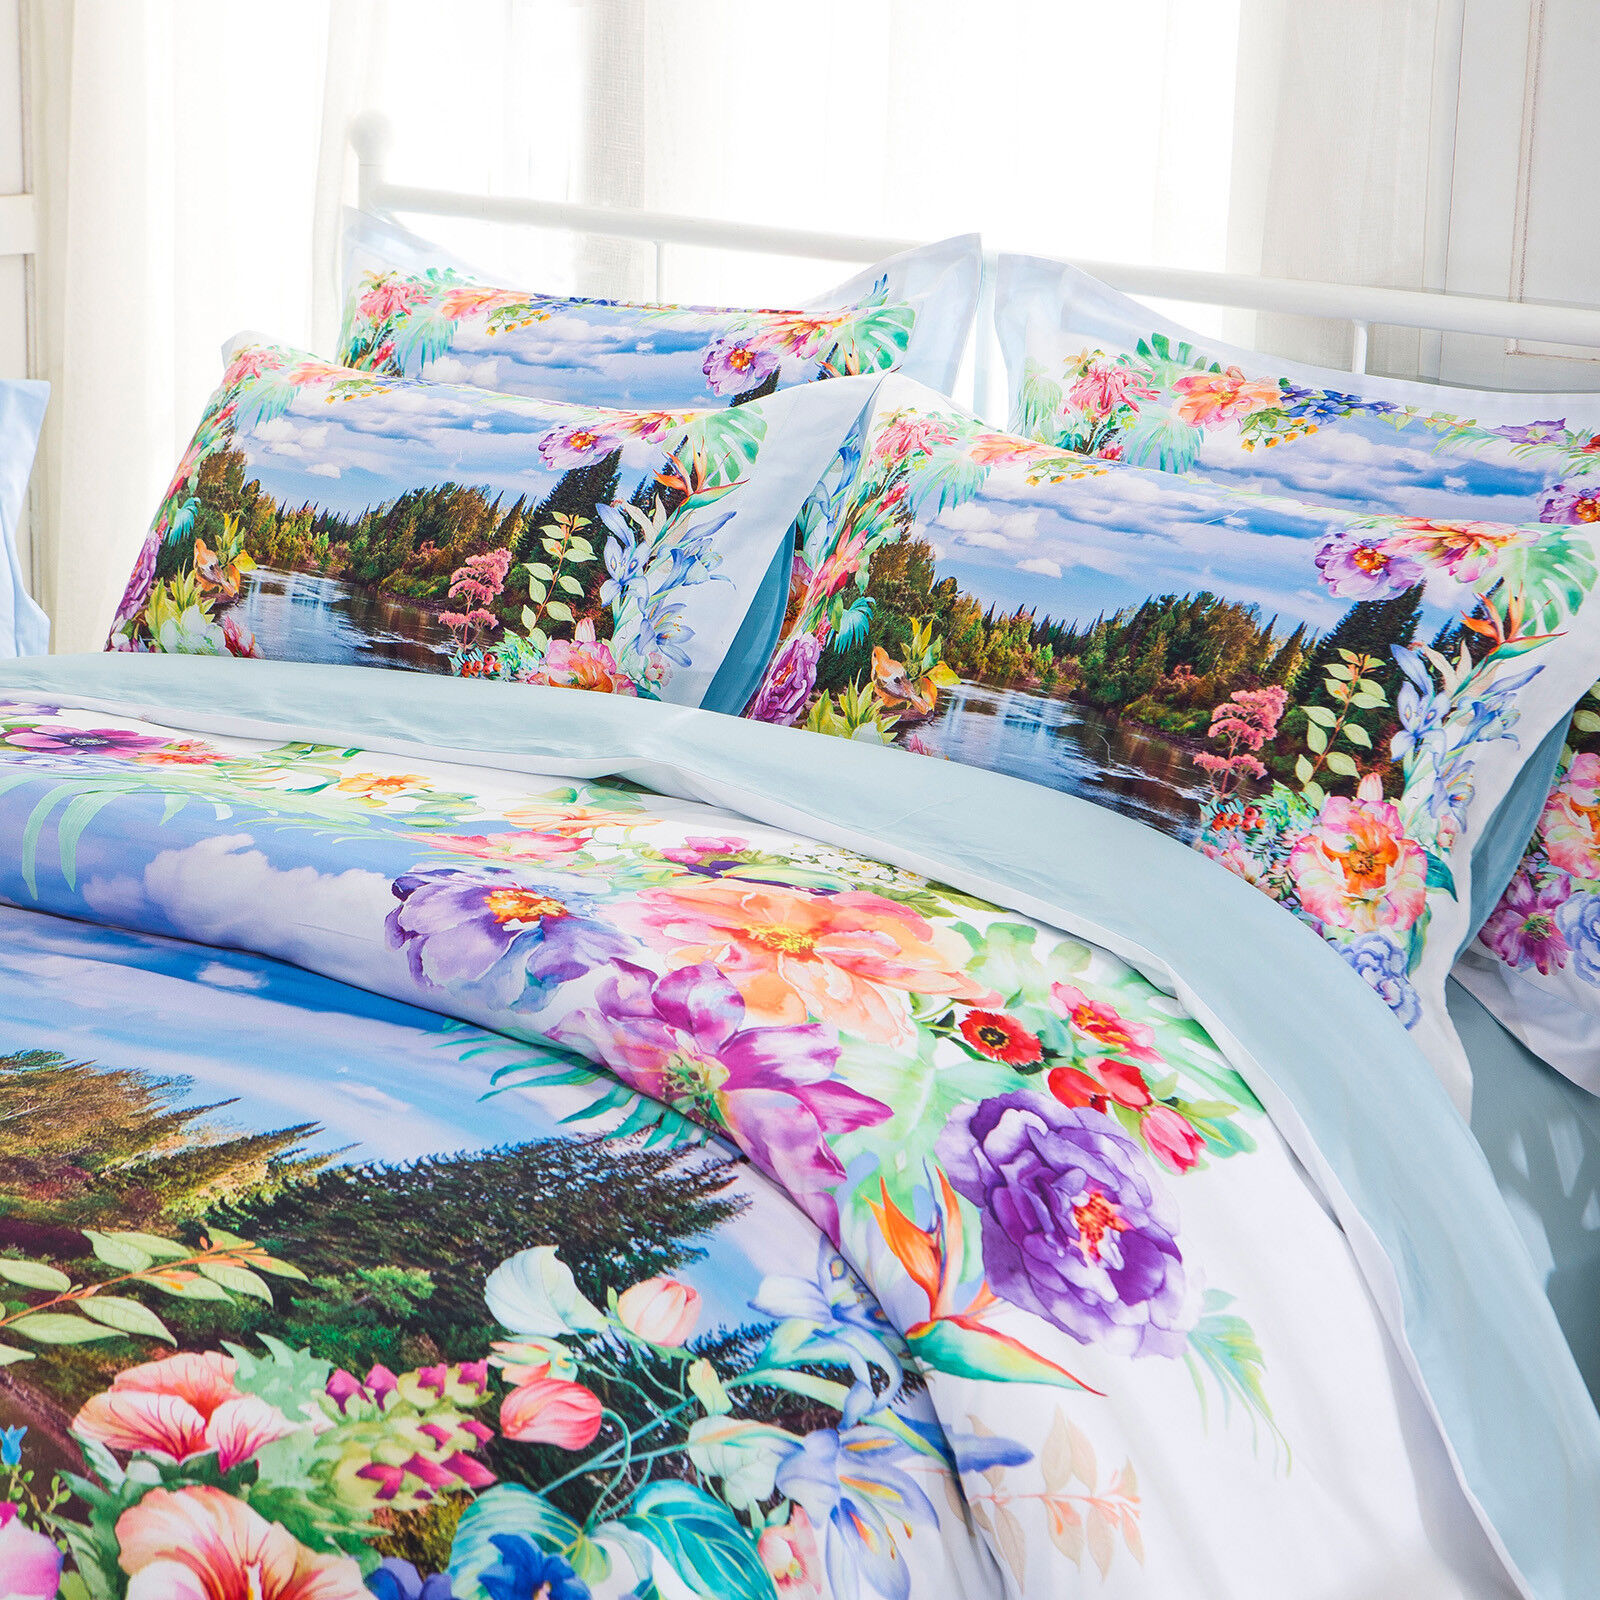 Springs Valley 100% Cotton Digital Print Queen King Duvet Cover Bedding Set